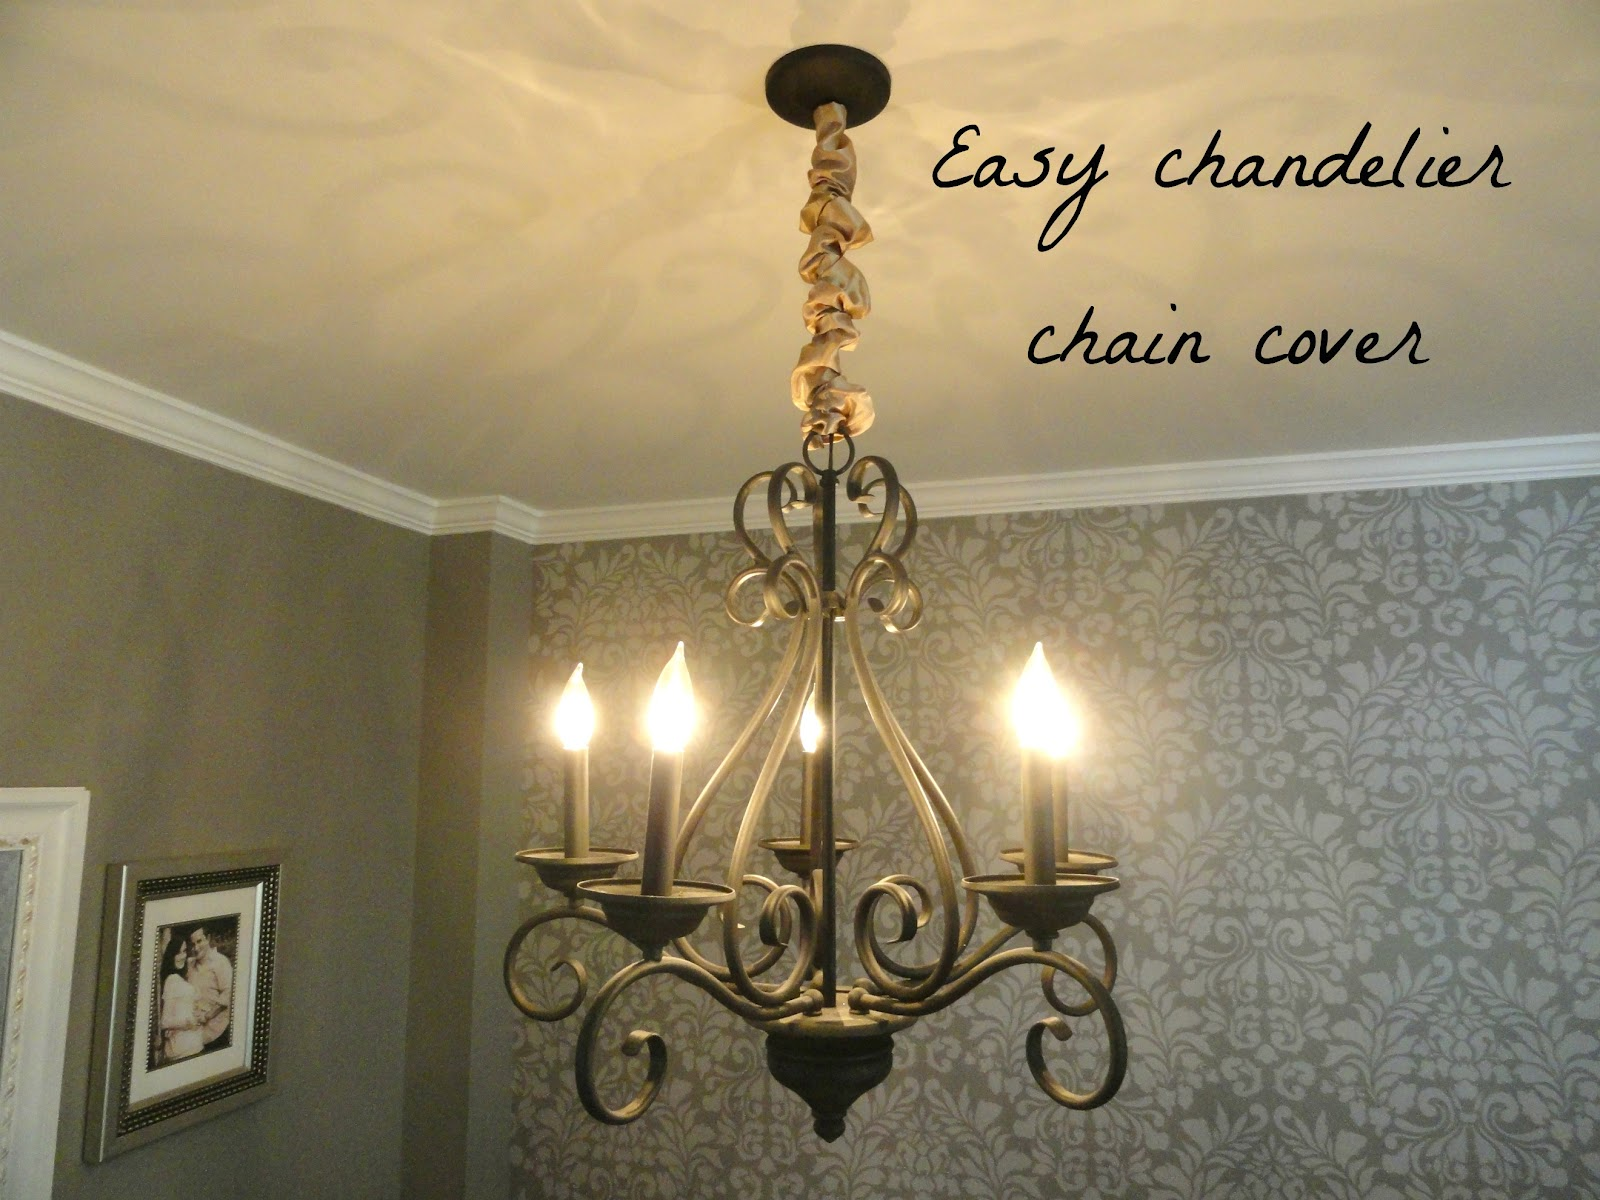 rachel 39 s nest diy chandelier chain cover